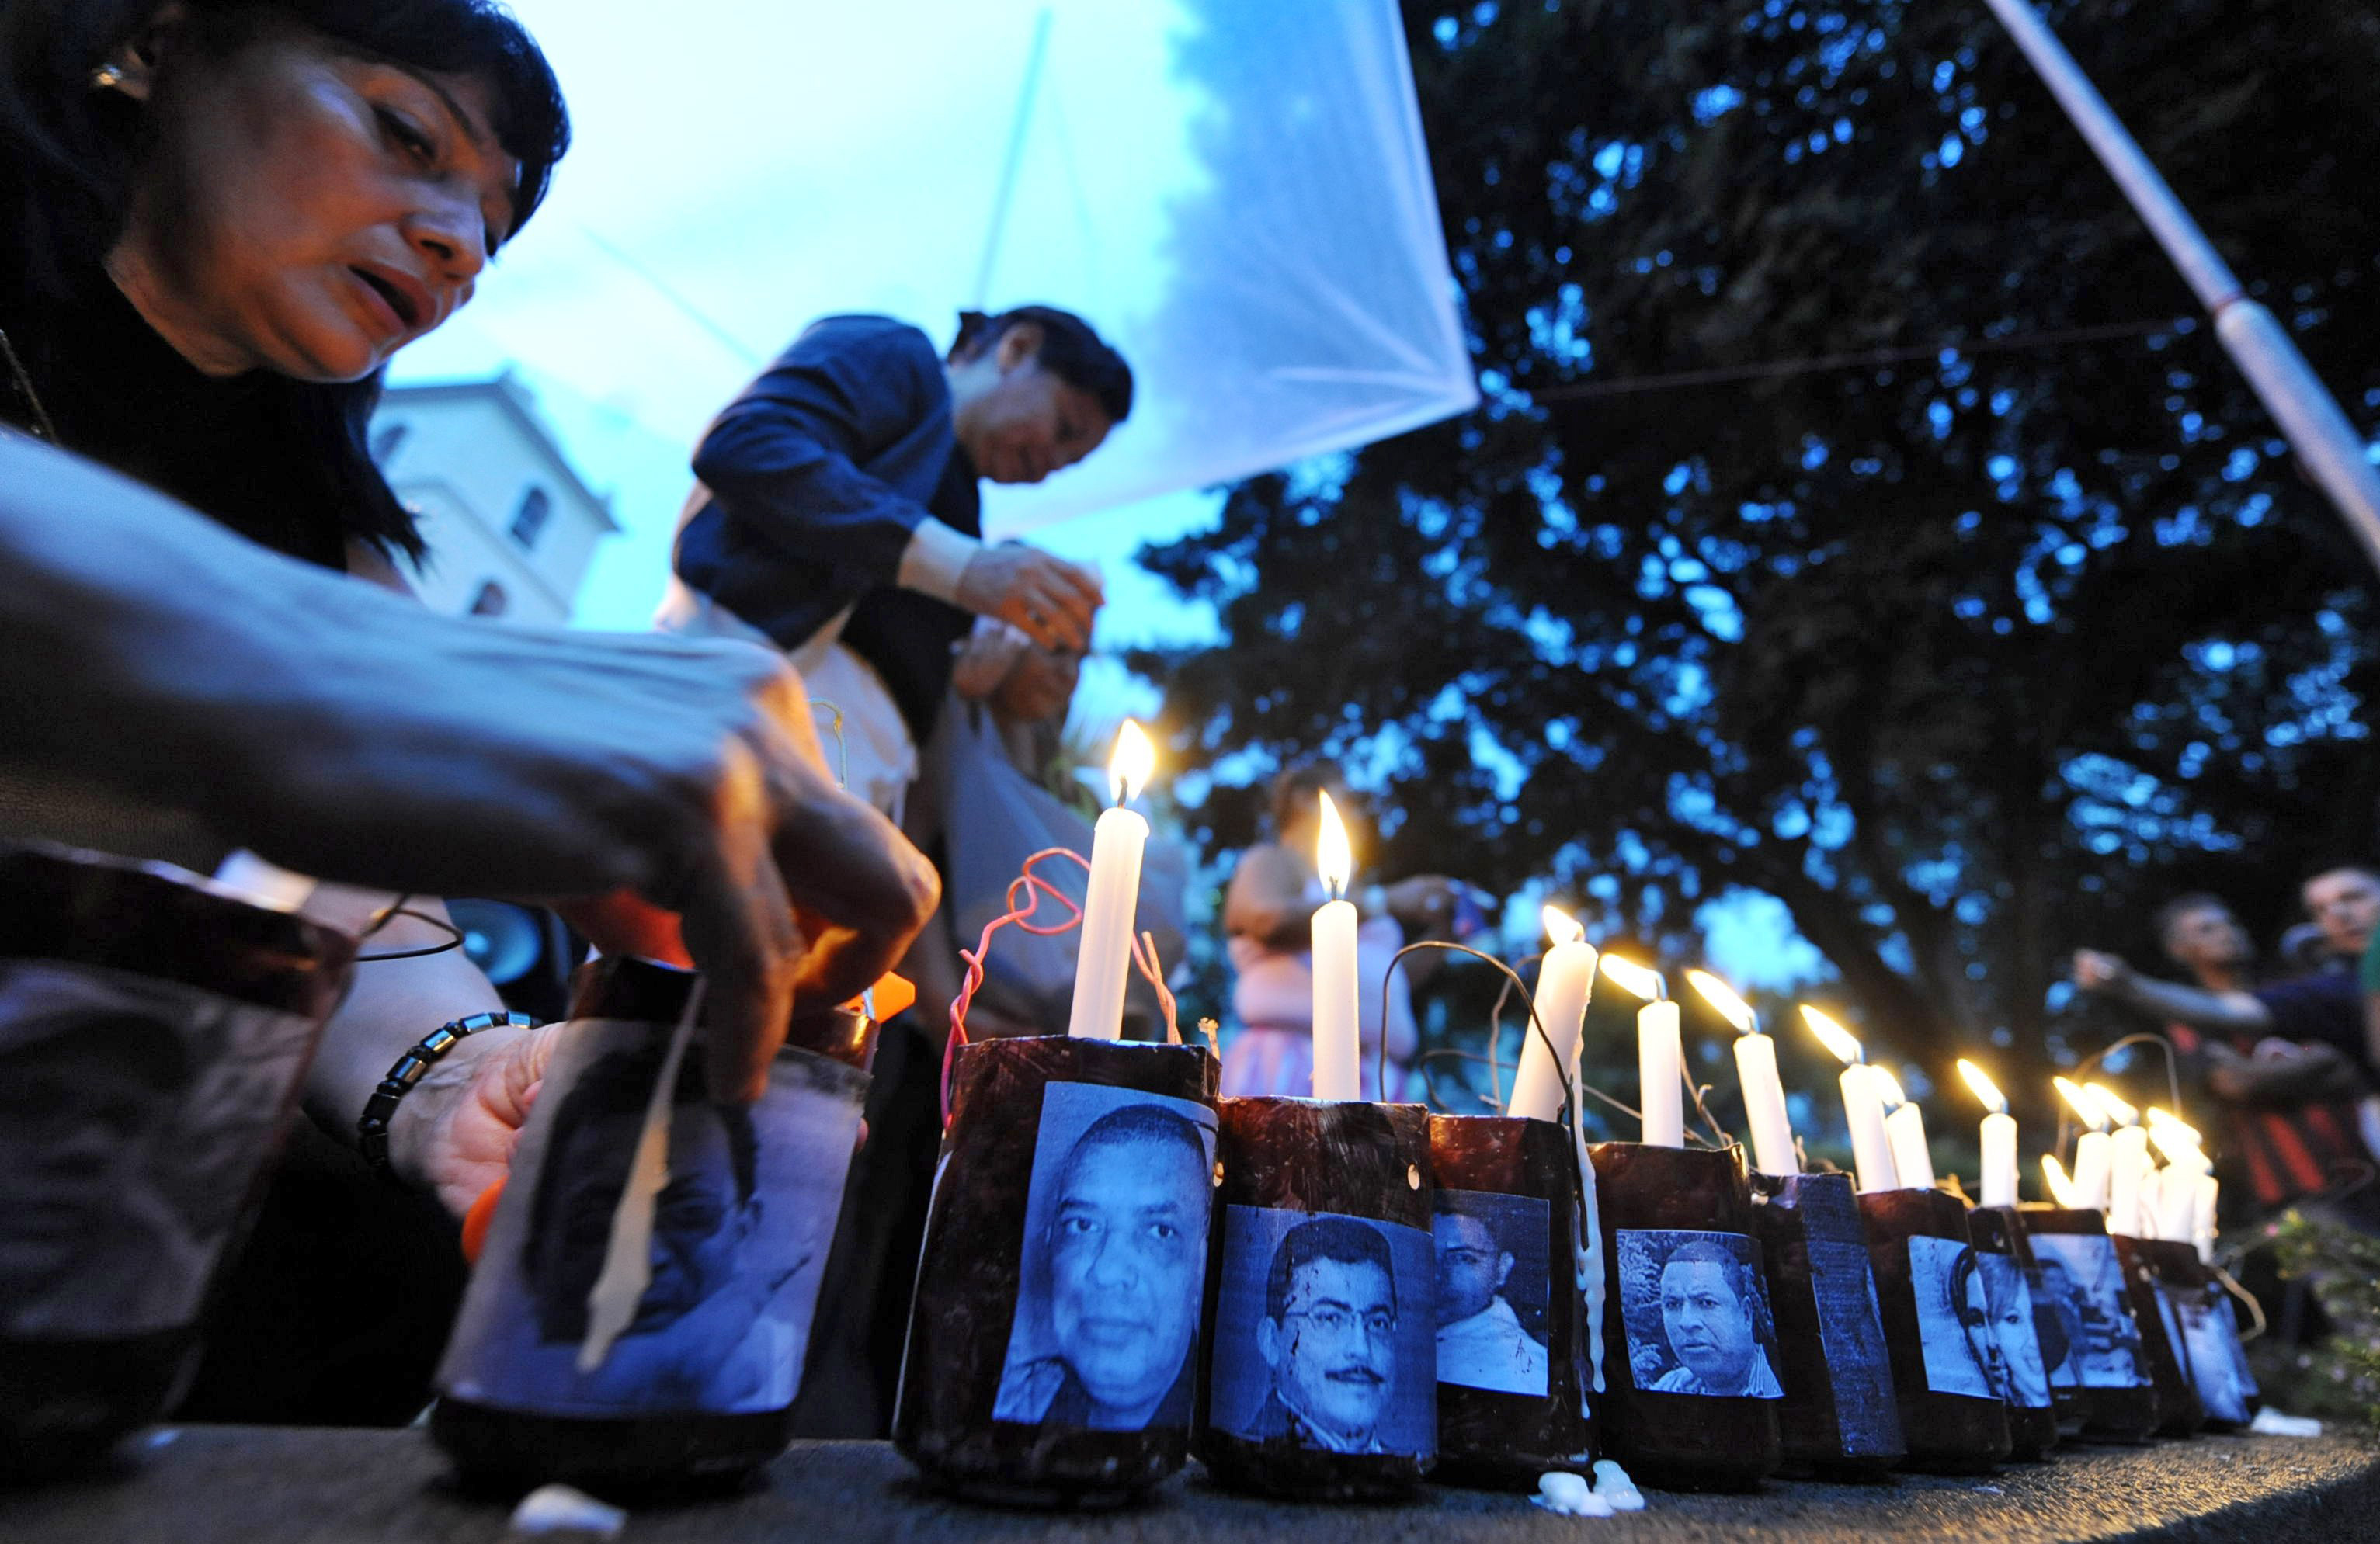 Honduran journalists take part in a vigil in memory of journalists killed in Honduras. (ORLANDO SIERRA/AFP/GettyImages)